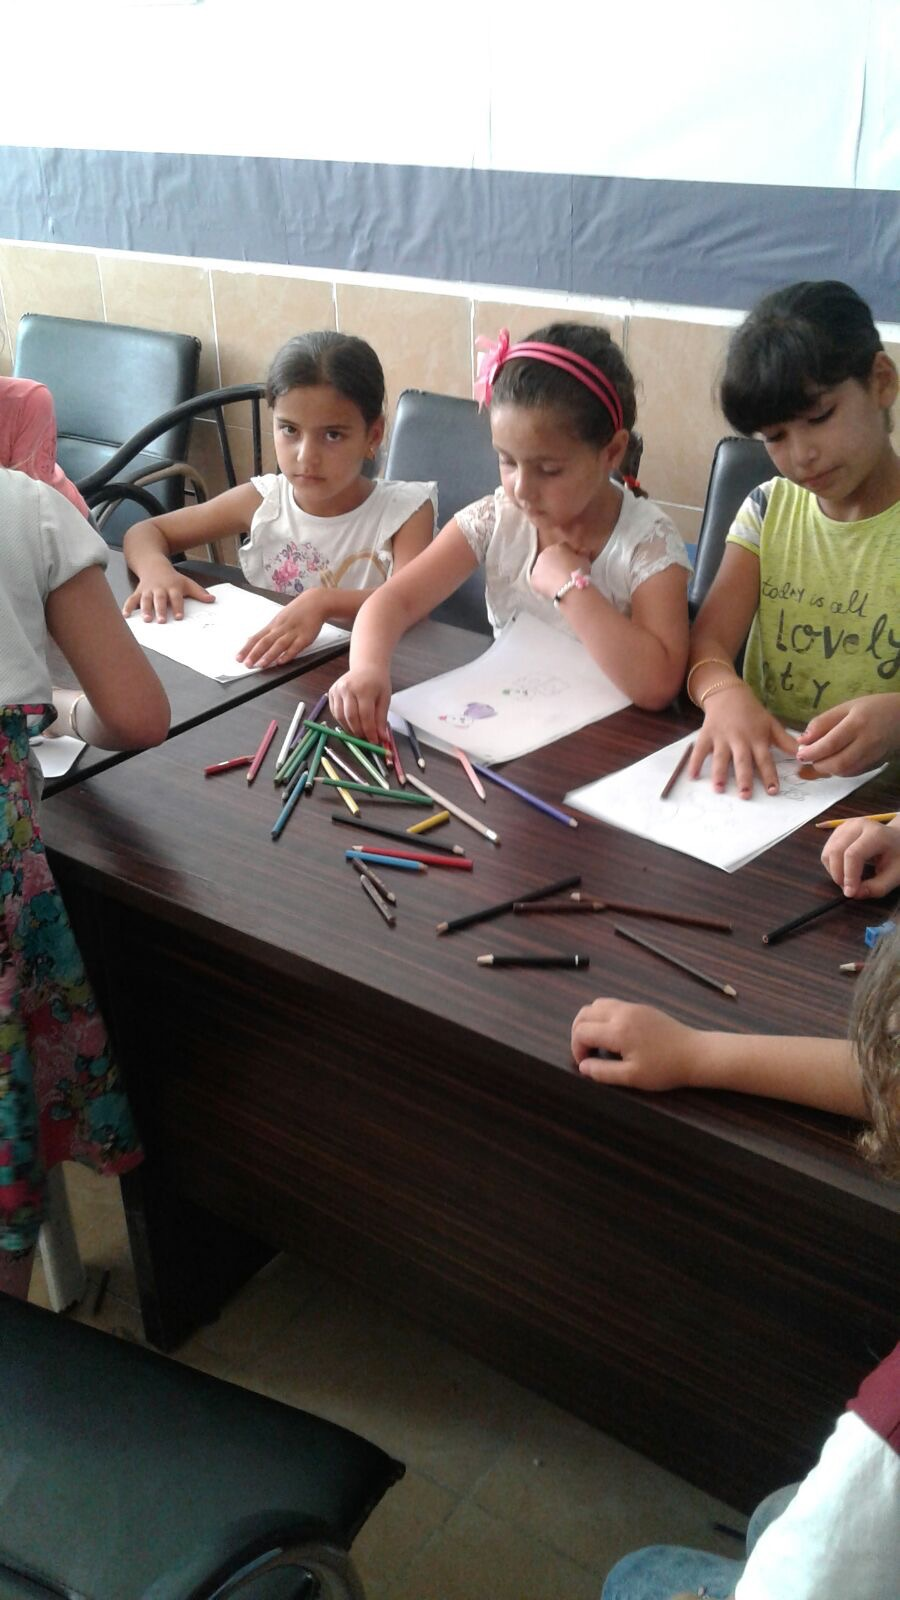 HOPING made a grant to cover the costs of registering Palestinian refugee children at schools in Turkey. The children were displaced from the Palestinian refugee camps in Northern Syria by the ongoing conflict and forced to flee with their families across the border into Turkey.